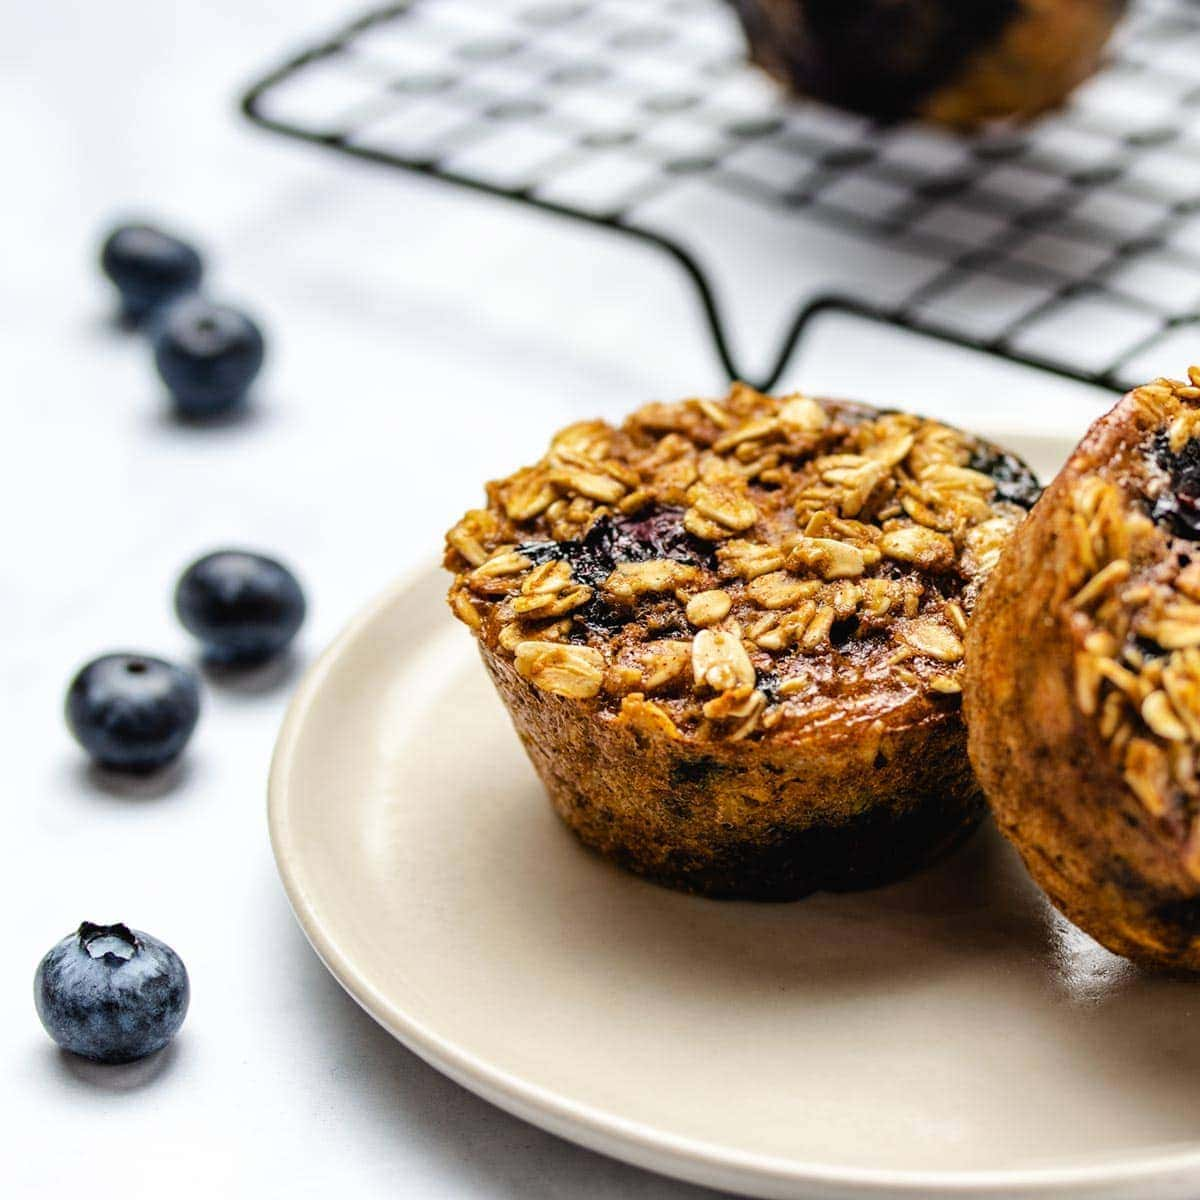 Two blueberry oatmeal cups on a cream coloured plate surrounded by fresh blueberries